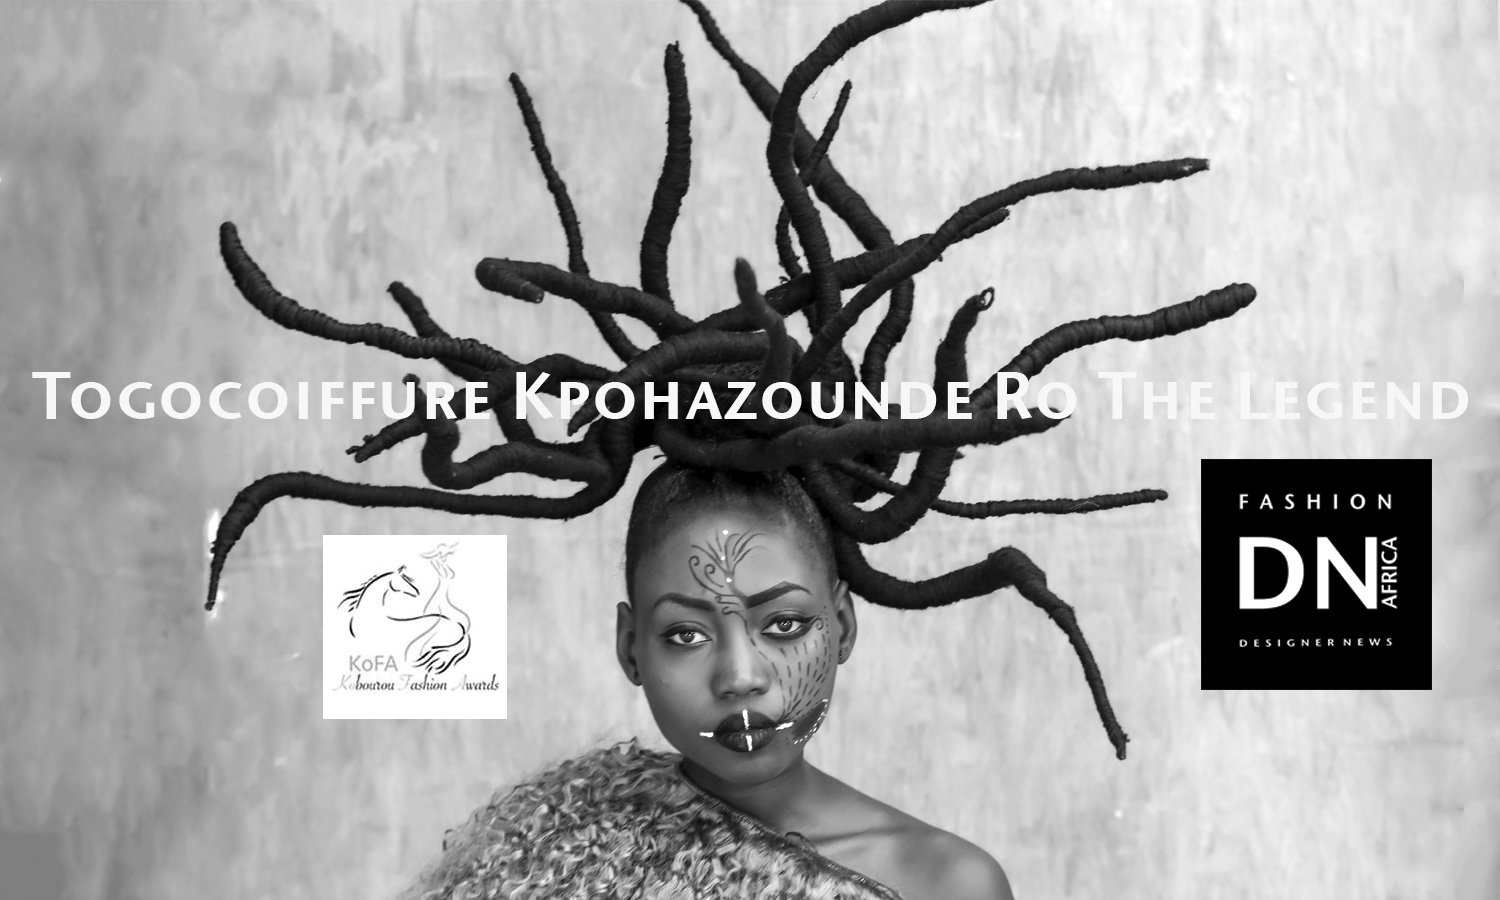 AFRICAN FASHION STYLE MAGAZINE - Togocoiffure Kpohazounde - Ro The Legend - kofa 2018 -KOROBOU FASHION AWARDS 2018 2ND EDITION - ORGANIZER HAL EBENE - DN AFRICA - STUDIO 24 NIGERIA -